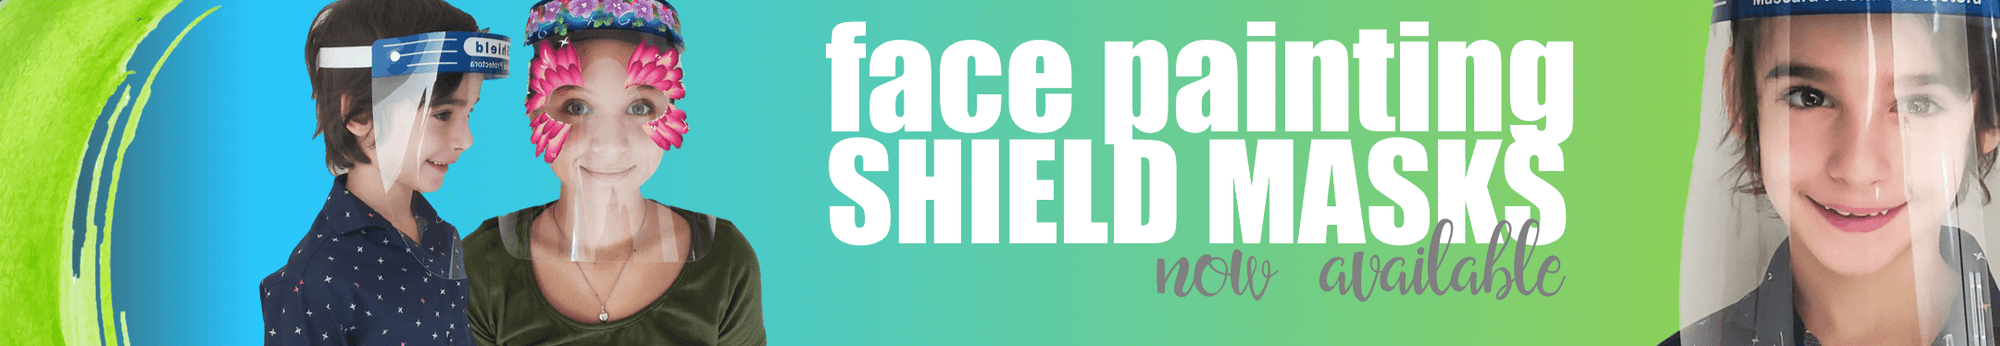 Face Painting Shields